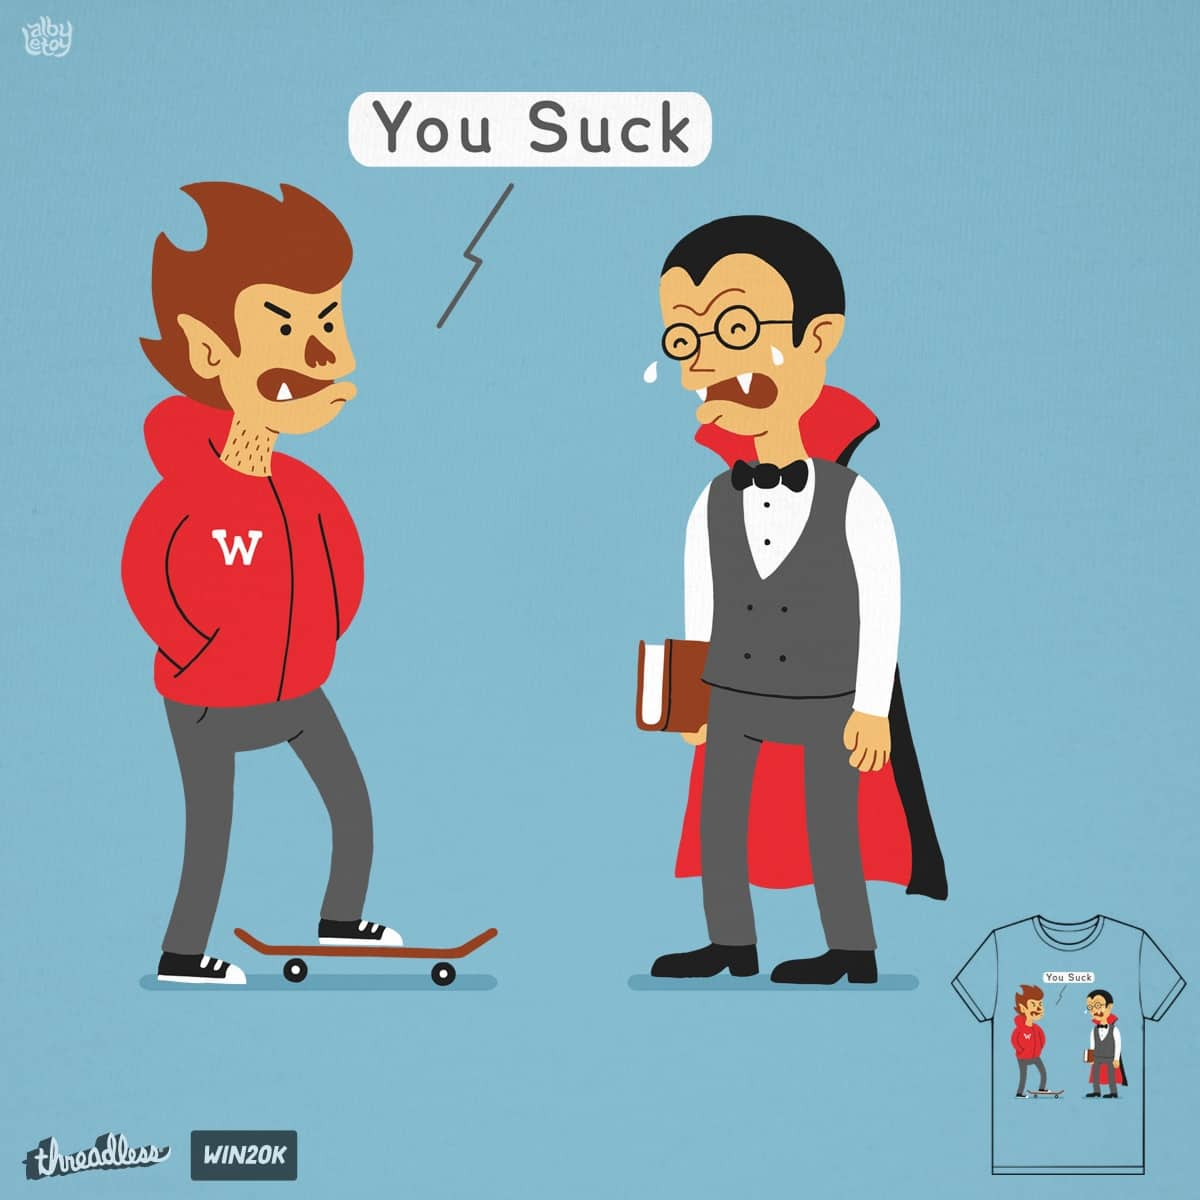 You Suck by albyletoy on Threadless